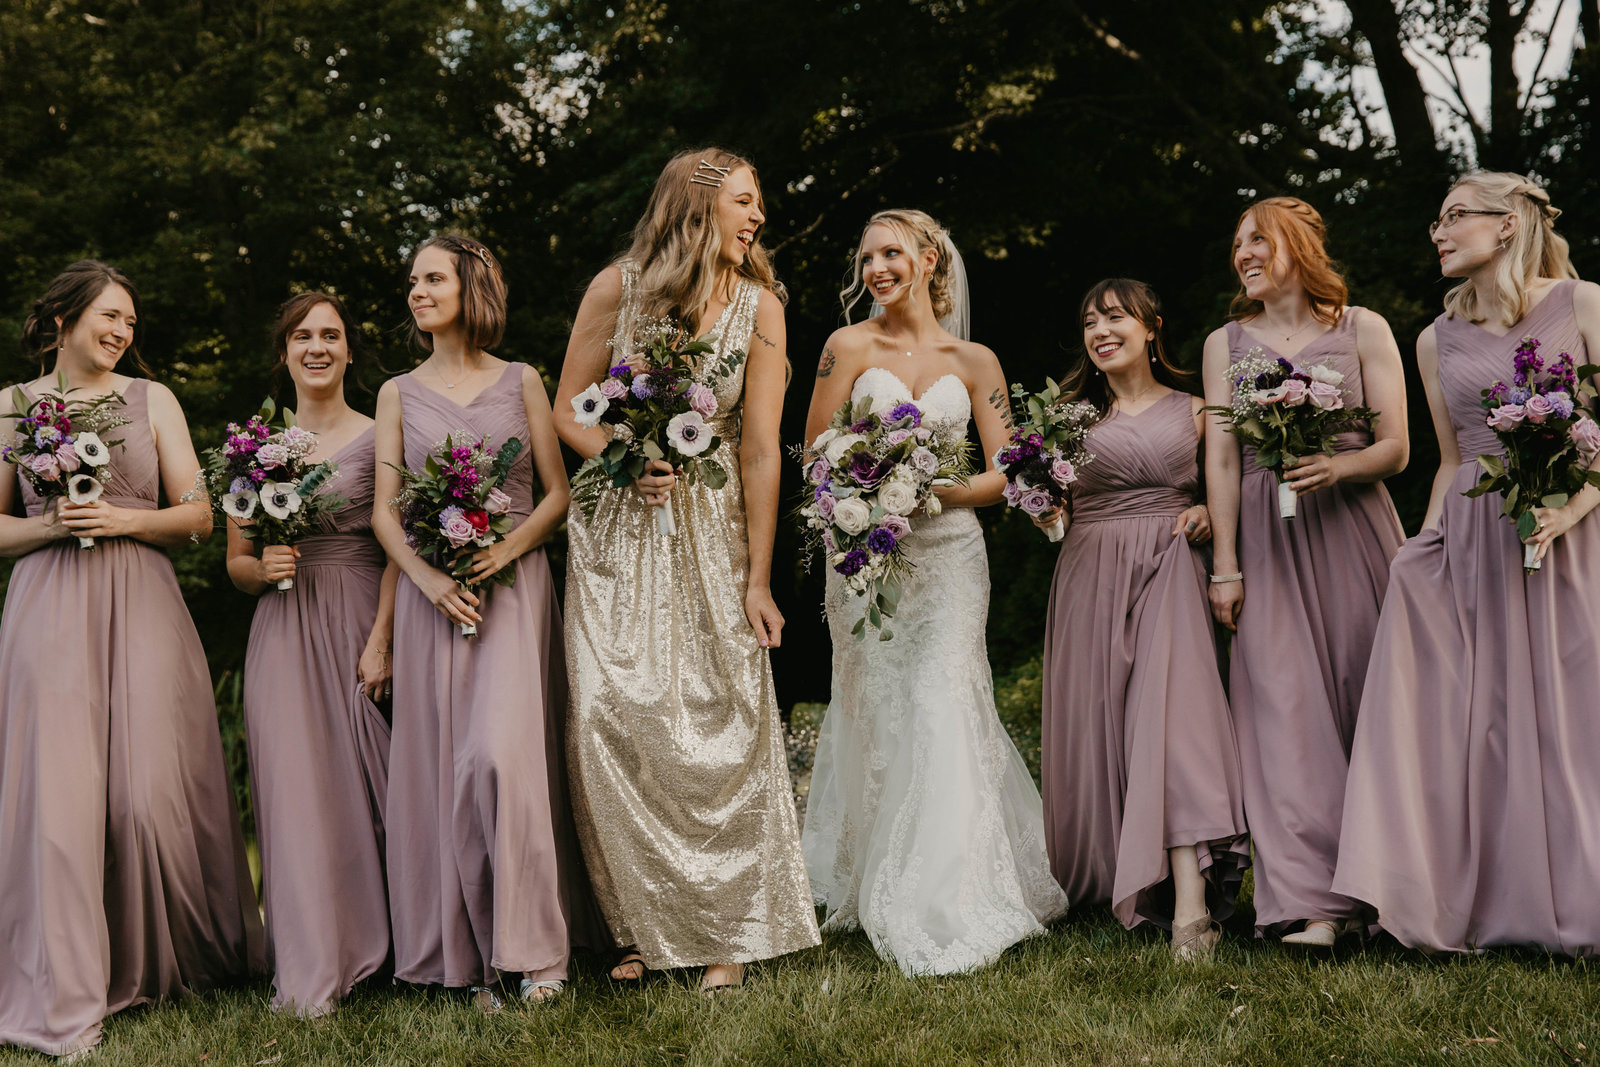 Bride and her bridemaids.